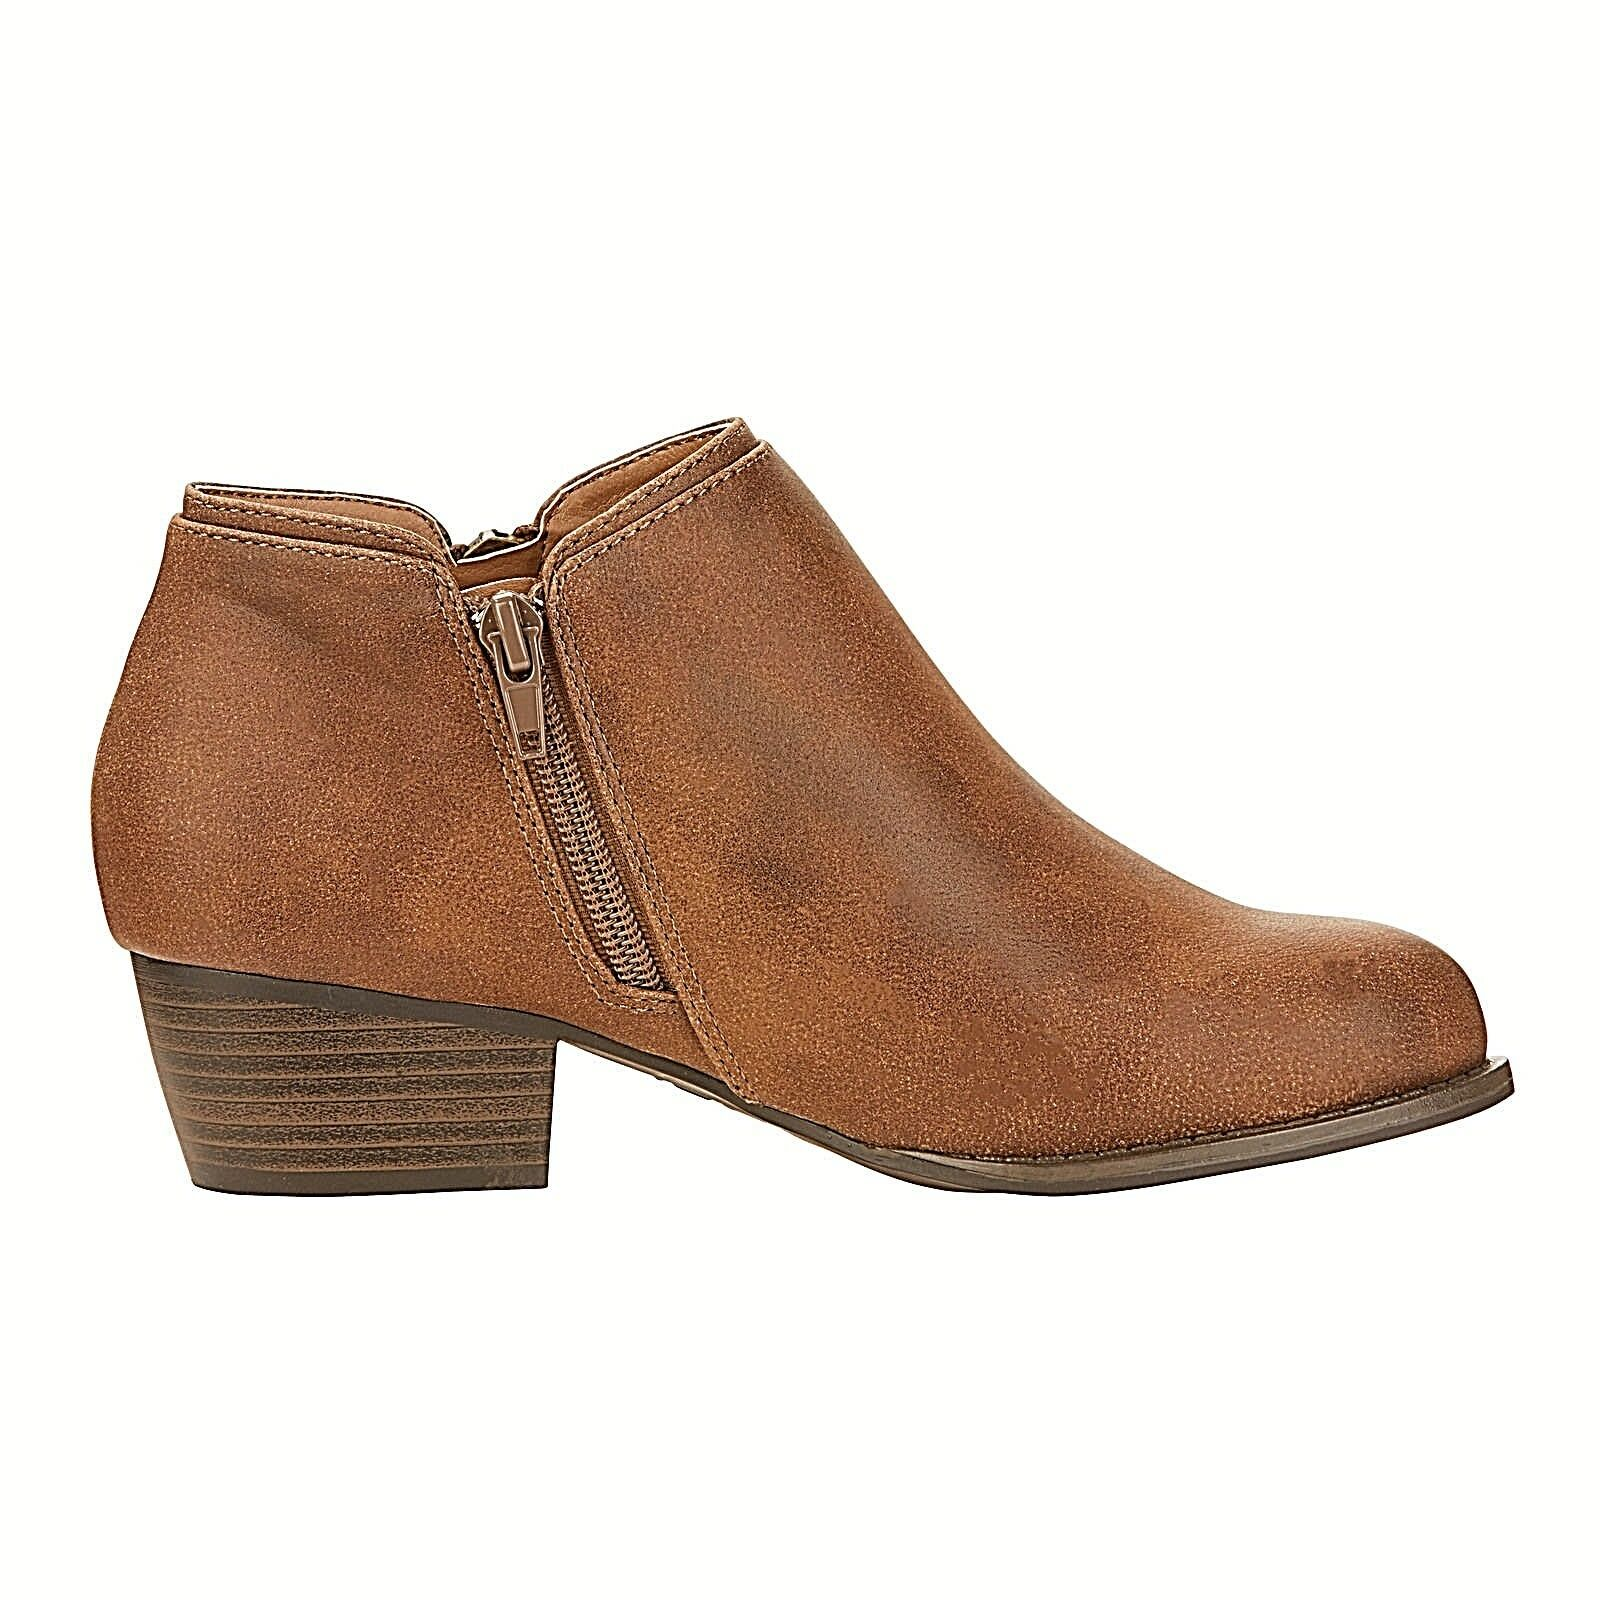 JBU Triumph Zippered Ankle Boots Brown Size 8.5 M FREE 2-3 Day Shipping